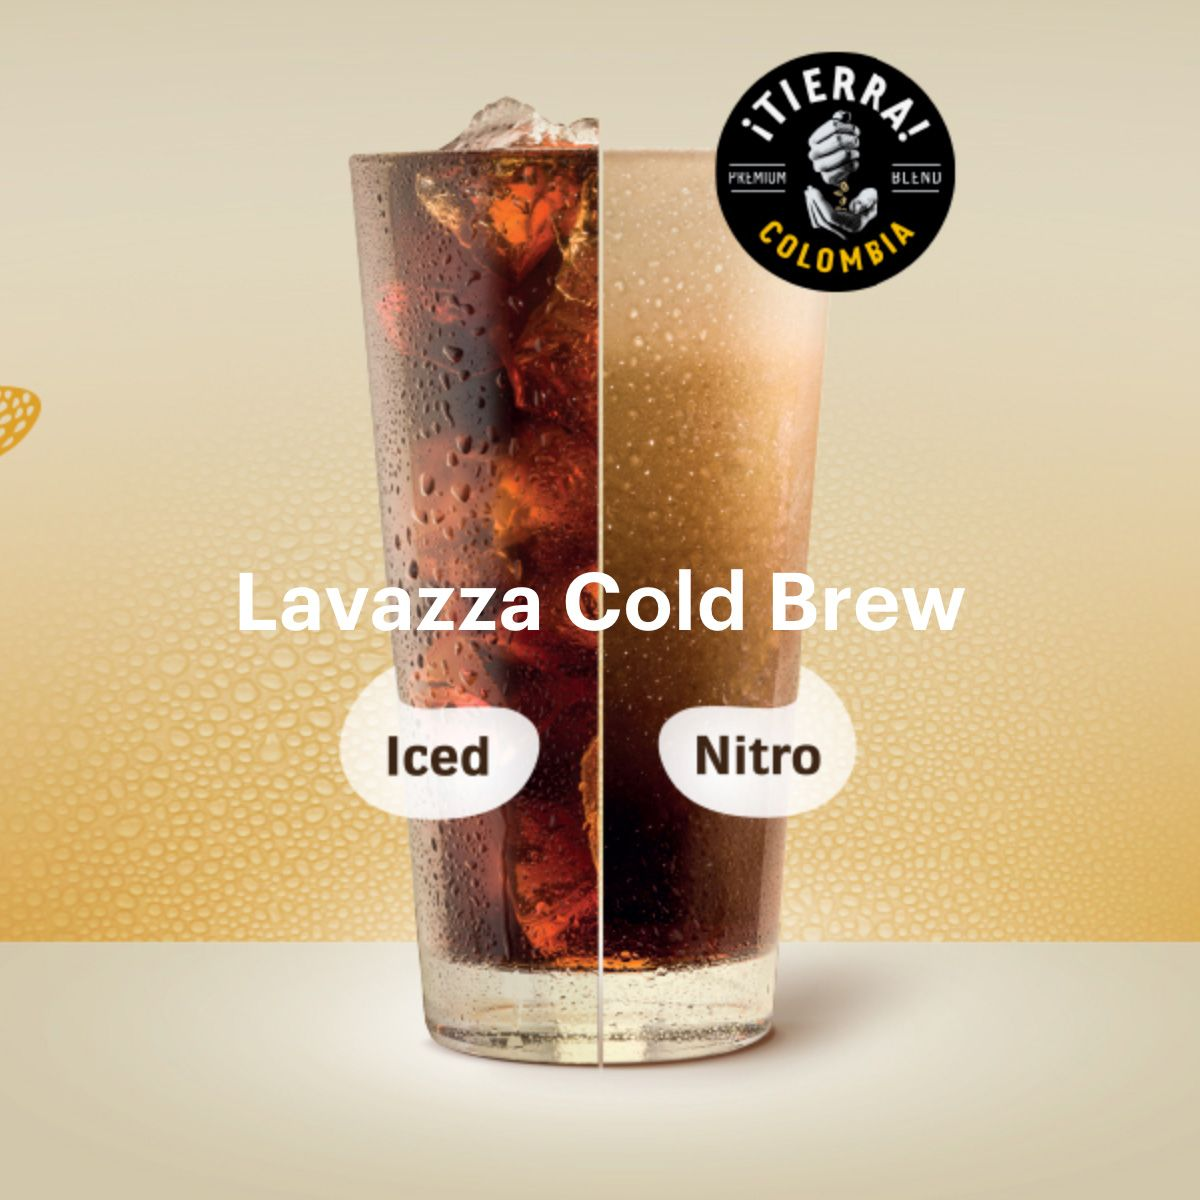 Lavazza Cold Brew